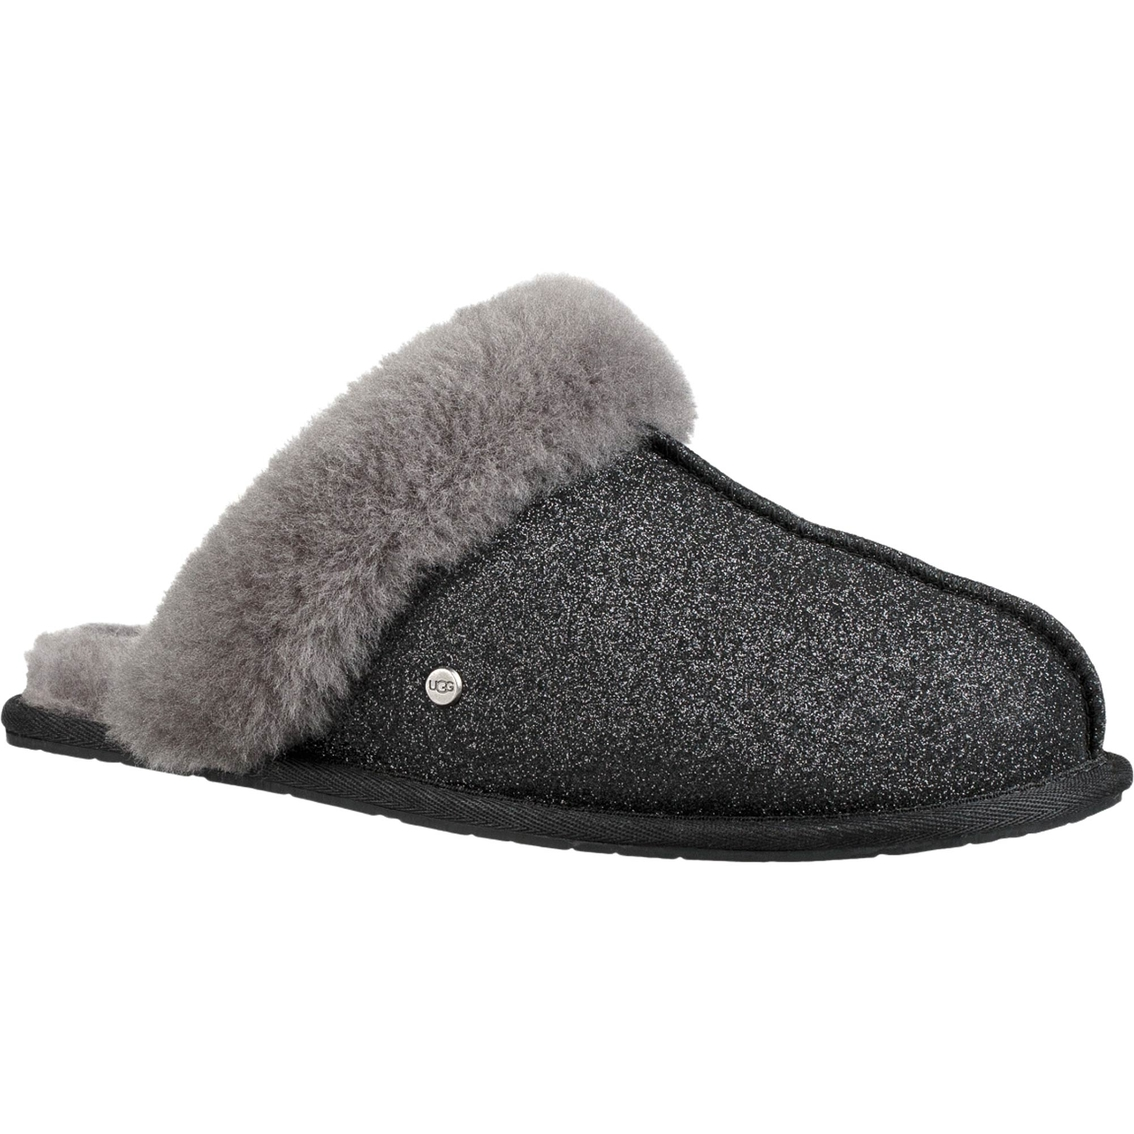 9344f5bfec12 Ugg Scuffette Ii Sparkle Slippers | Slippers | Shoes | Shop The Exchange